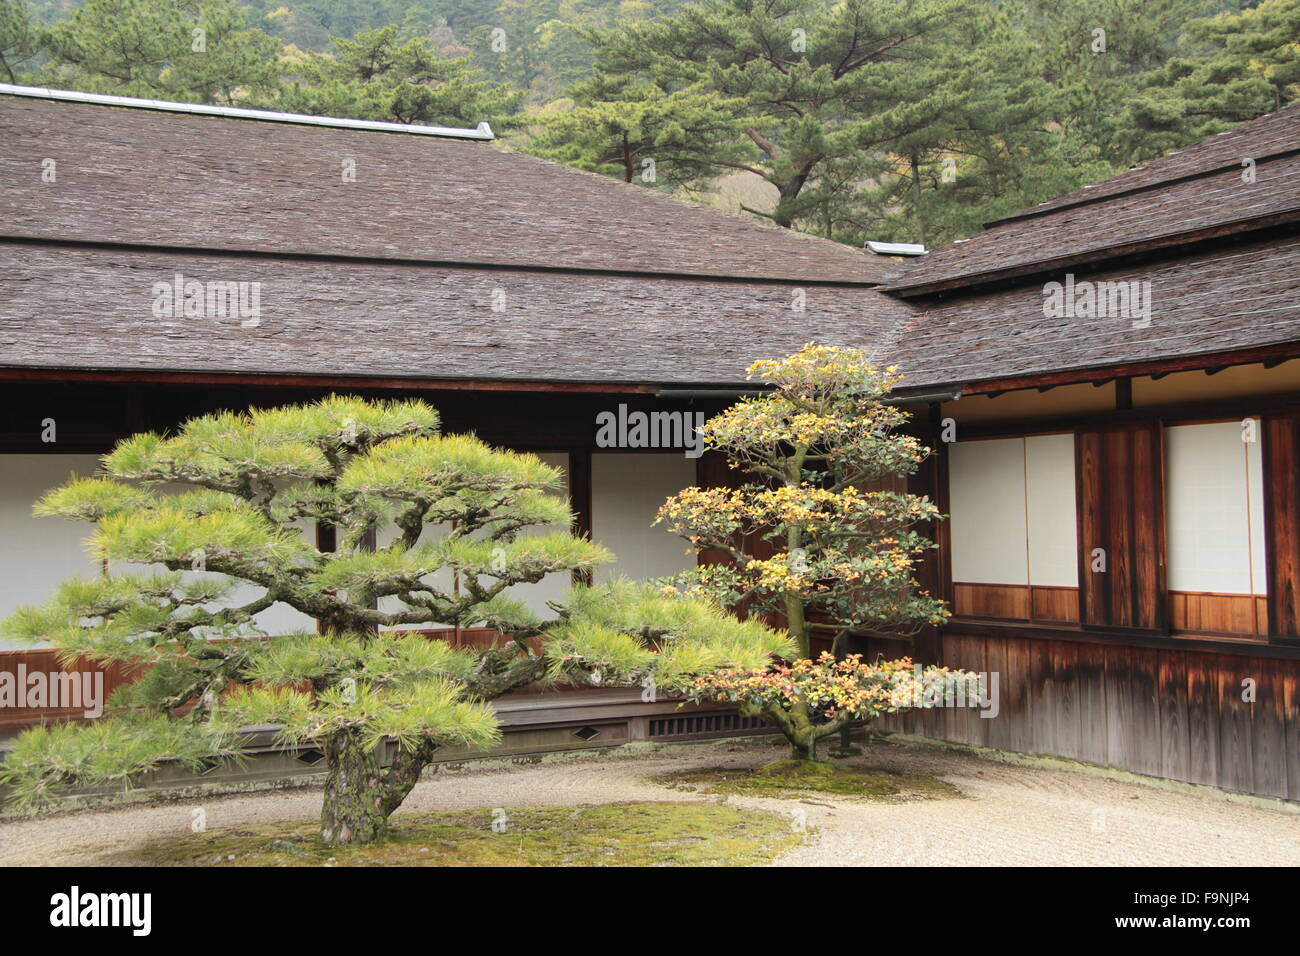 pine trees in front of traditional Japanese house Stock Photo